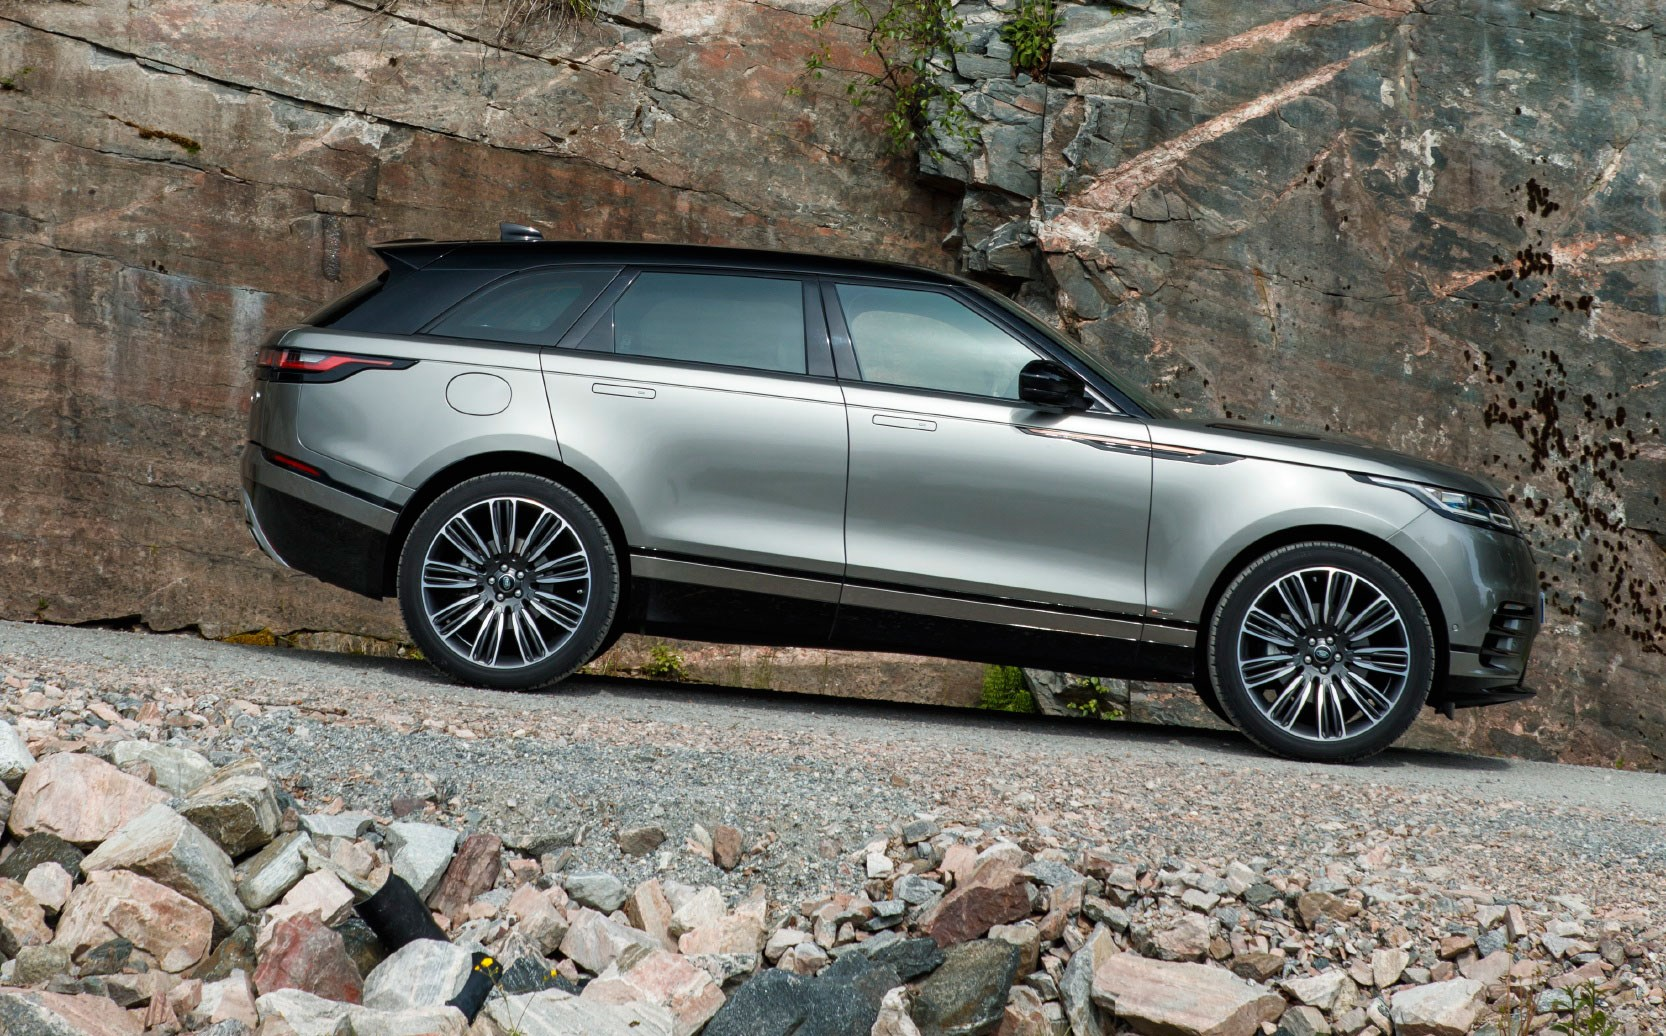 Range Rover Velar: specs, prices and on sale dates